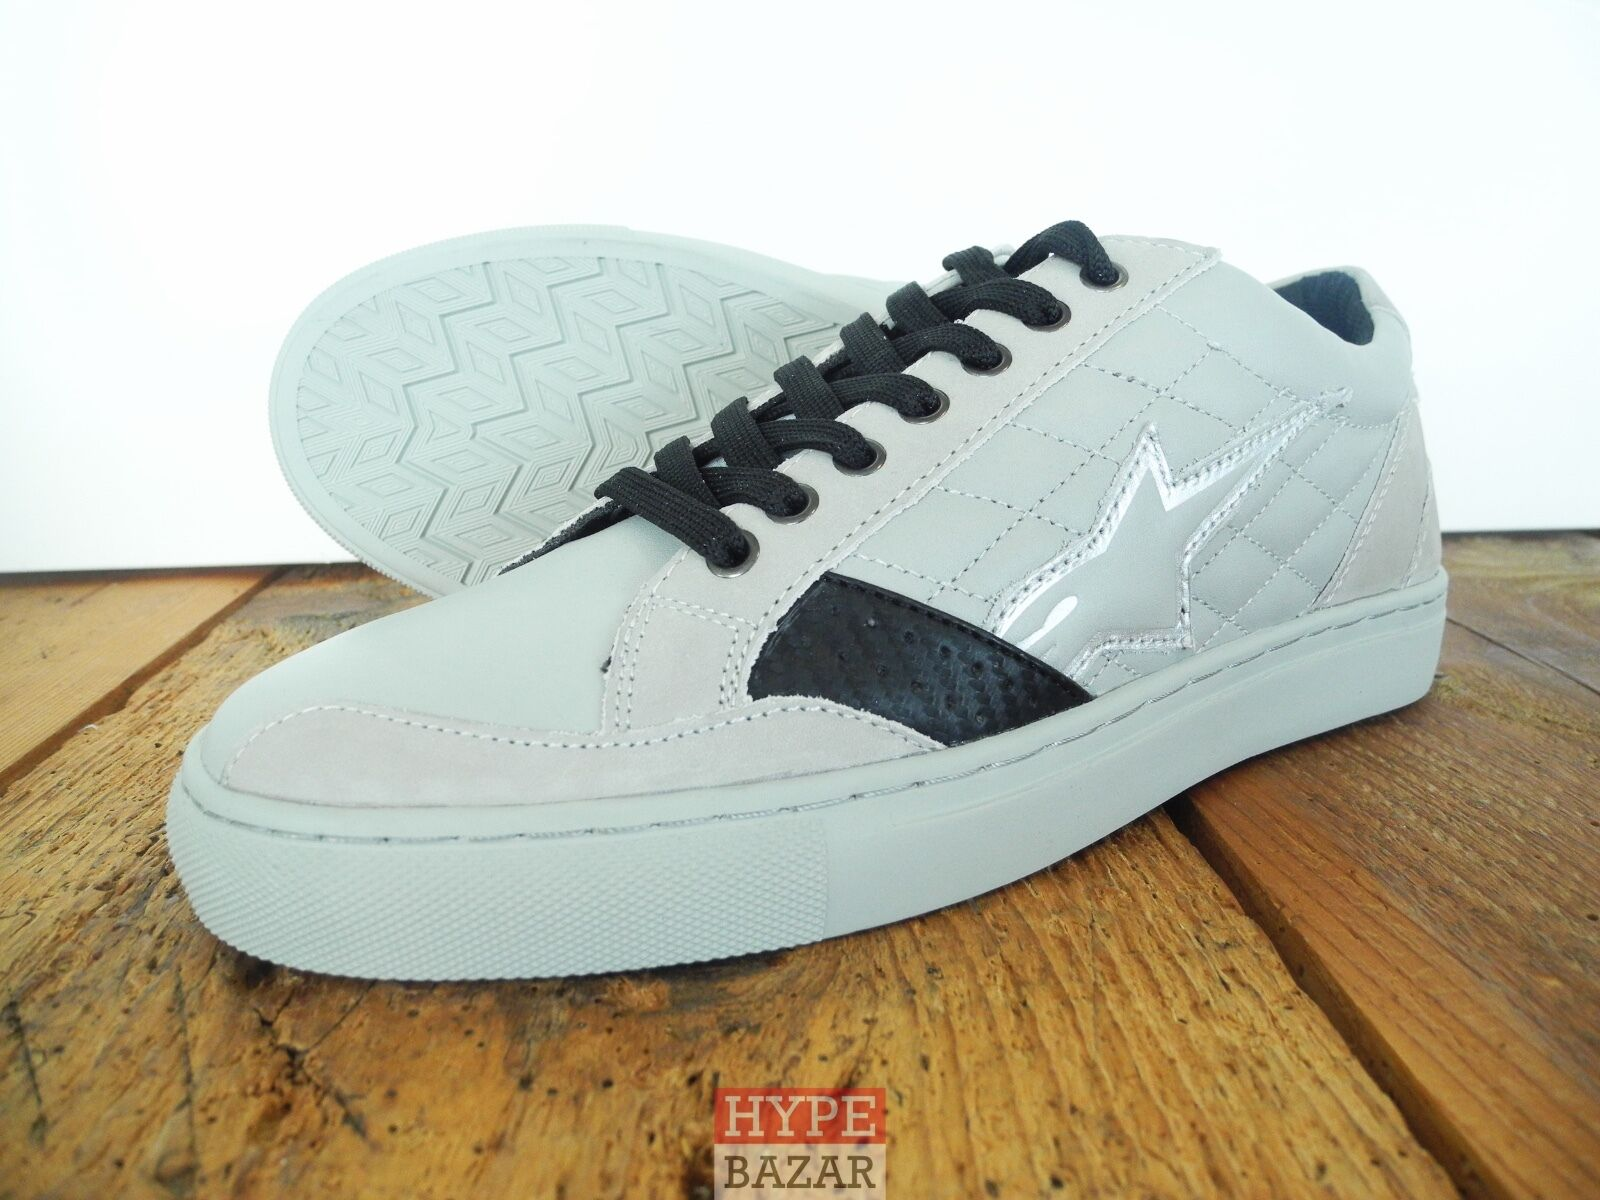 ALPINESTARS ACE Modern shoes/scarpe NUOVO Smoke-Grey Taglia: US 9 EUR 42 Astars